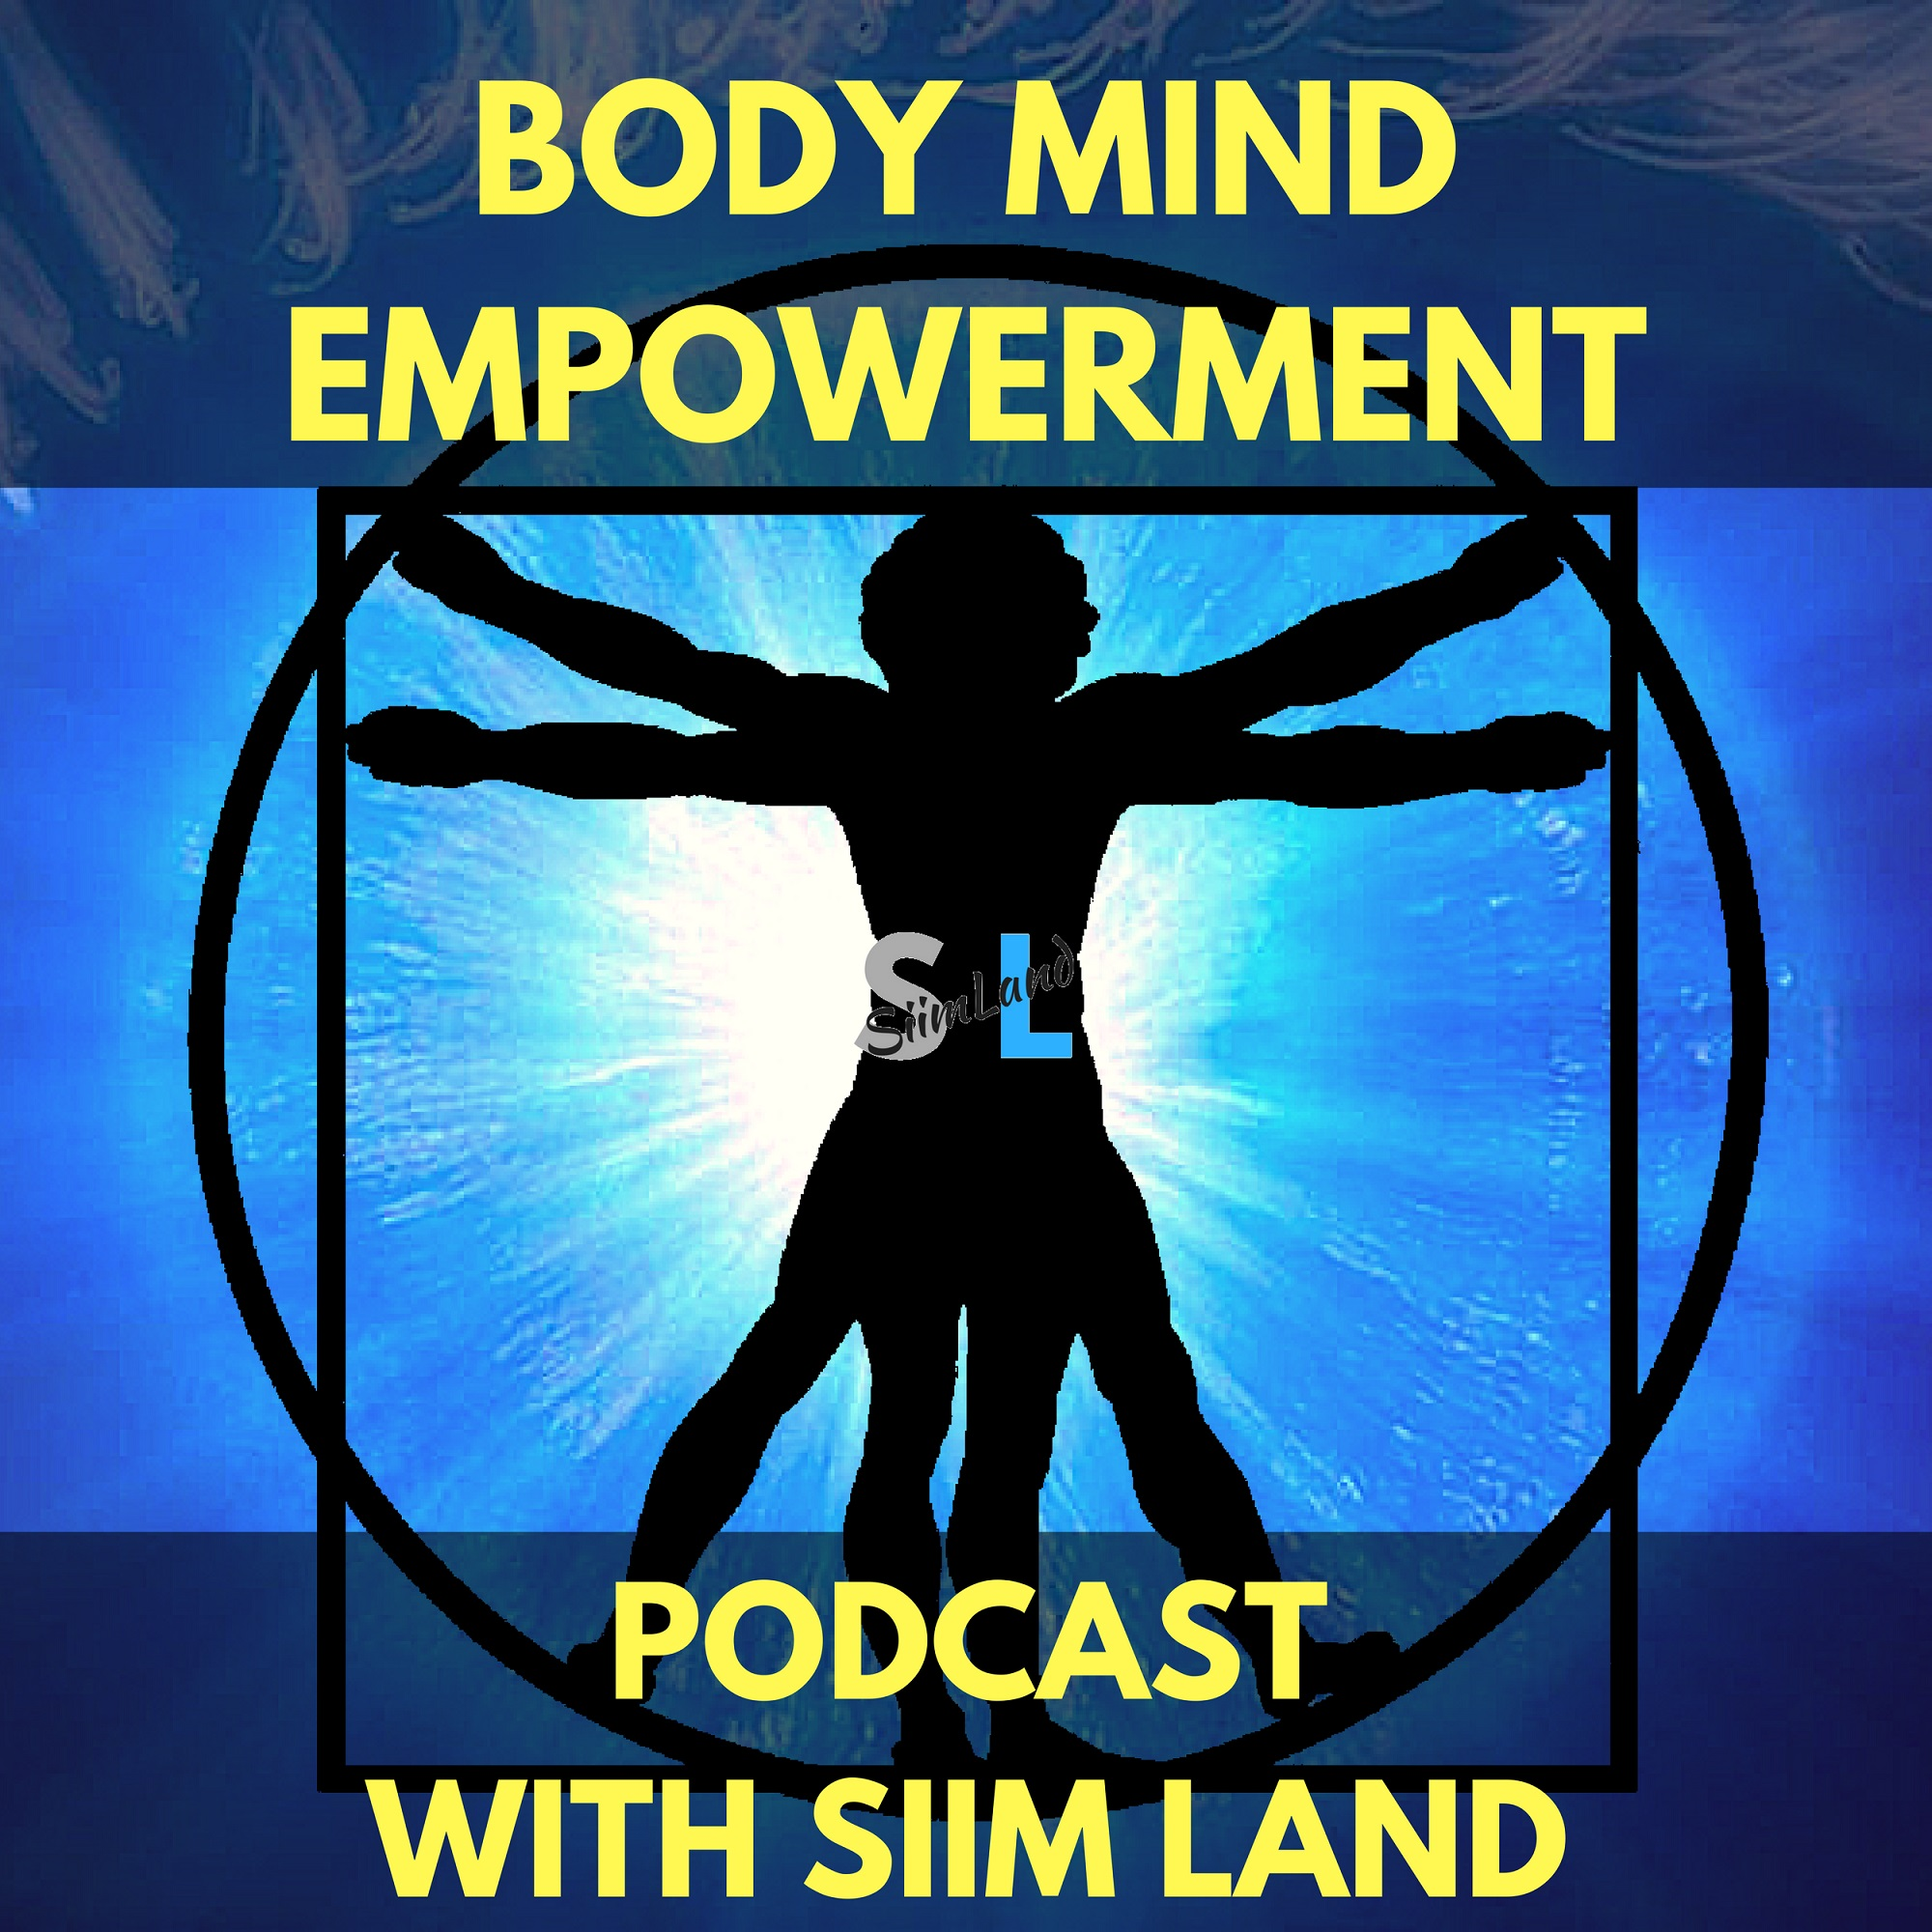 Body Mind Empowerment with Siim Land